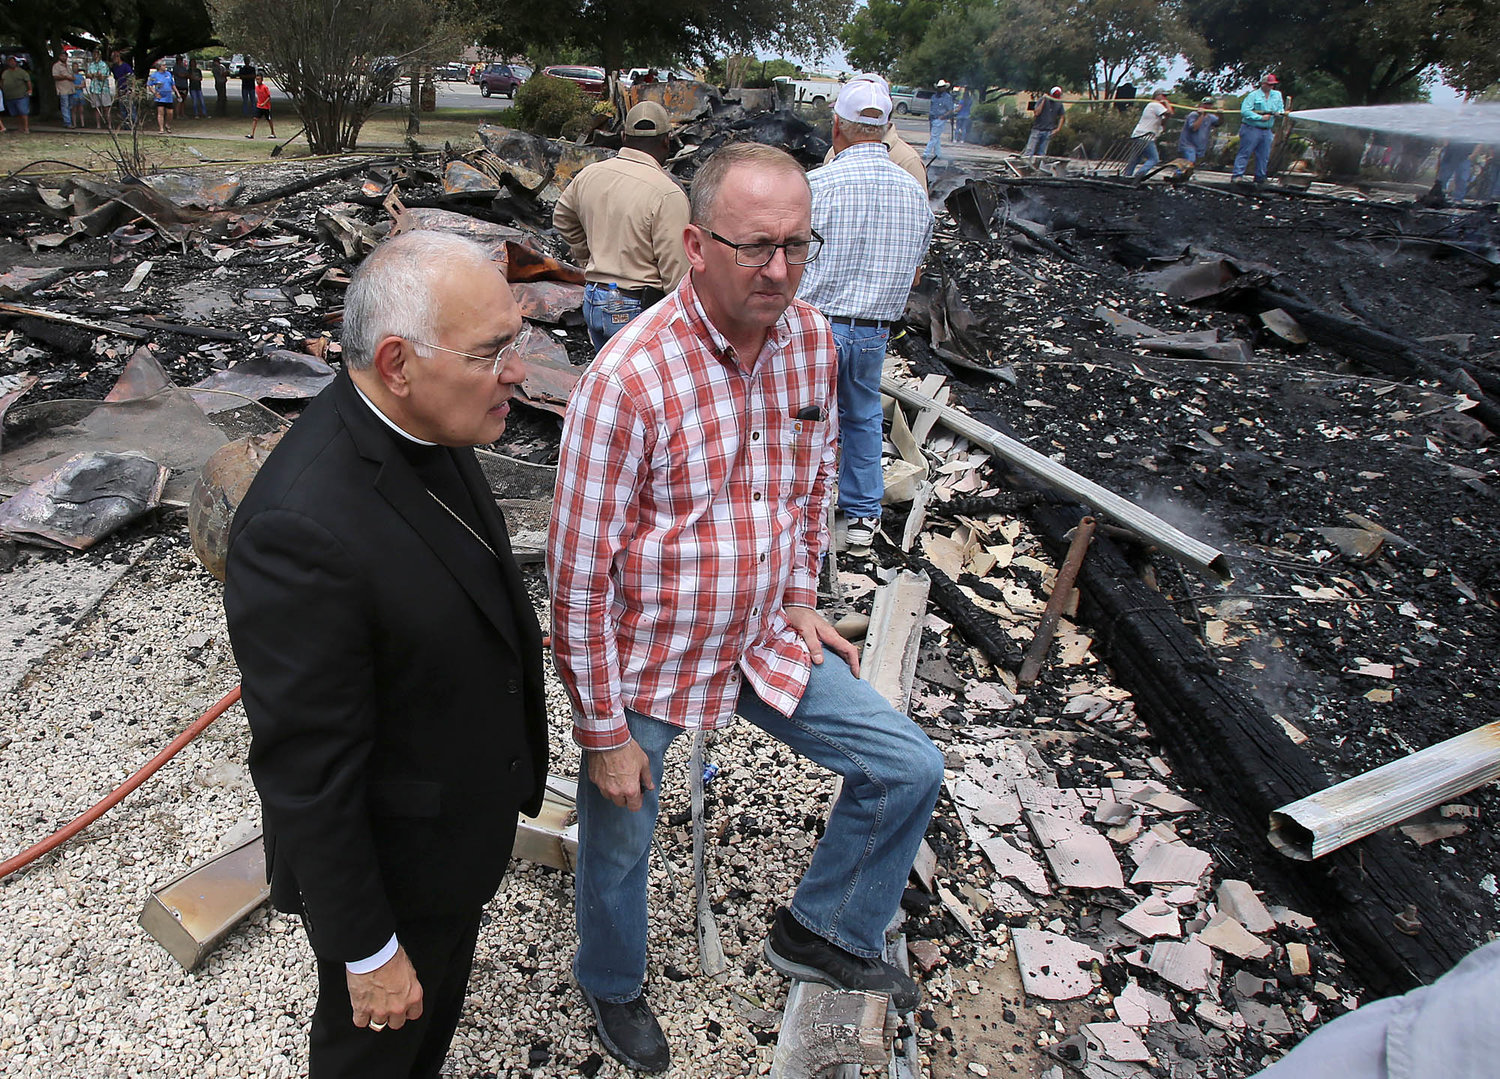 Bishop Joe S. Vasquez of Austin, Texas, and Father Darrell Kostiha, pastor at St. Joseph Parish in Cyclone and Sts. Cyril and Methodius Mission in Marak, look through debris of the Church of the Visitation in Westphalia July 29, 2019, after the 124-year-old church was destroyed in a fire. Since 1883 the parish has served the Catholic community of southwestern Falls County, many of whom are descendents of immigrants from the northwest German region of Westphalia.